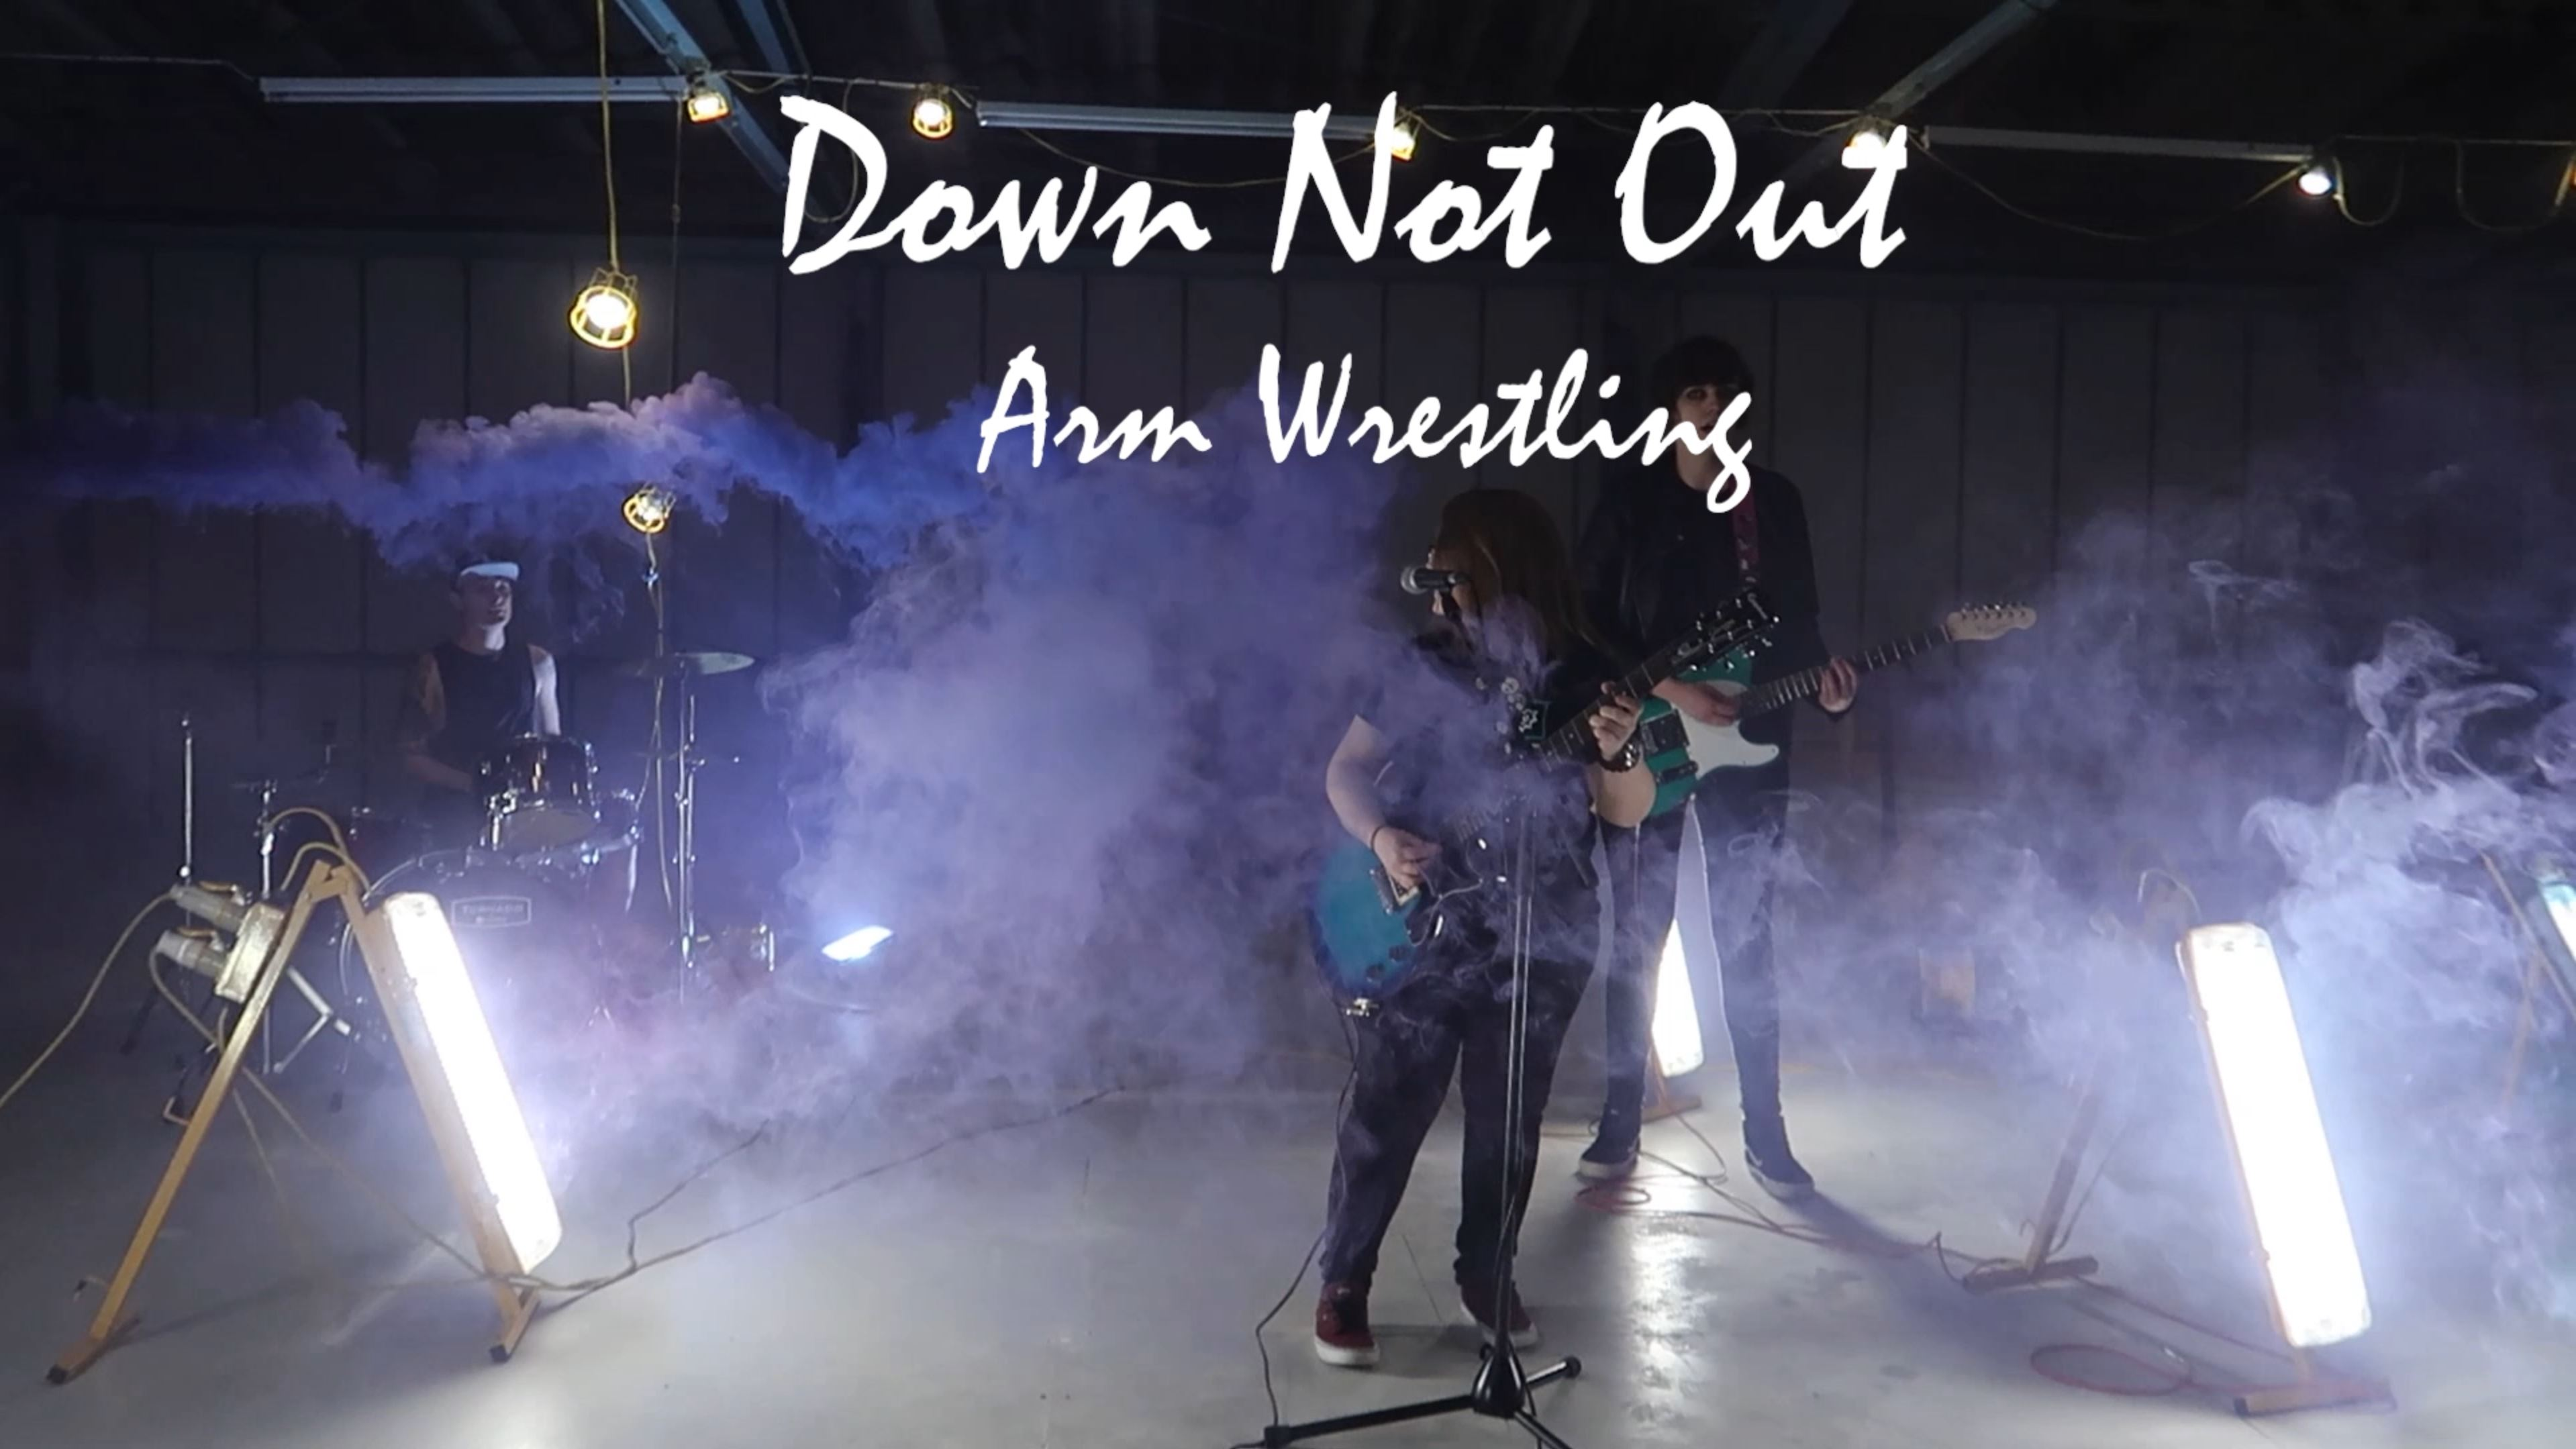 Down Not Out news Down Not Out - Arm Wrestling [OFFICIAL VIDEO]